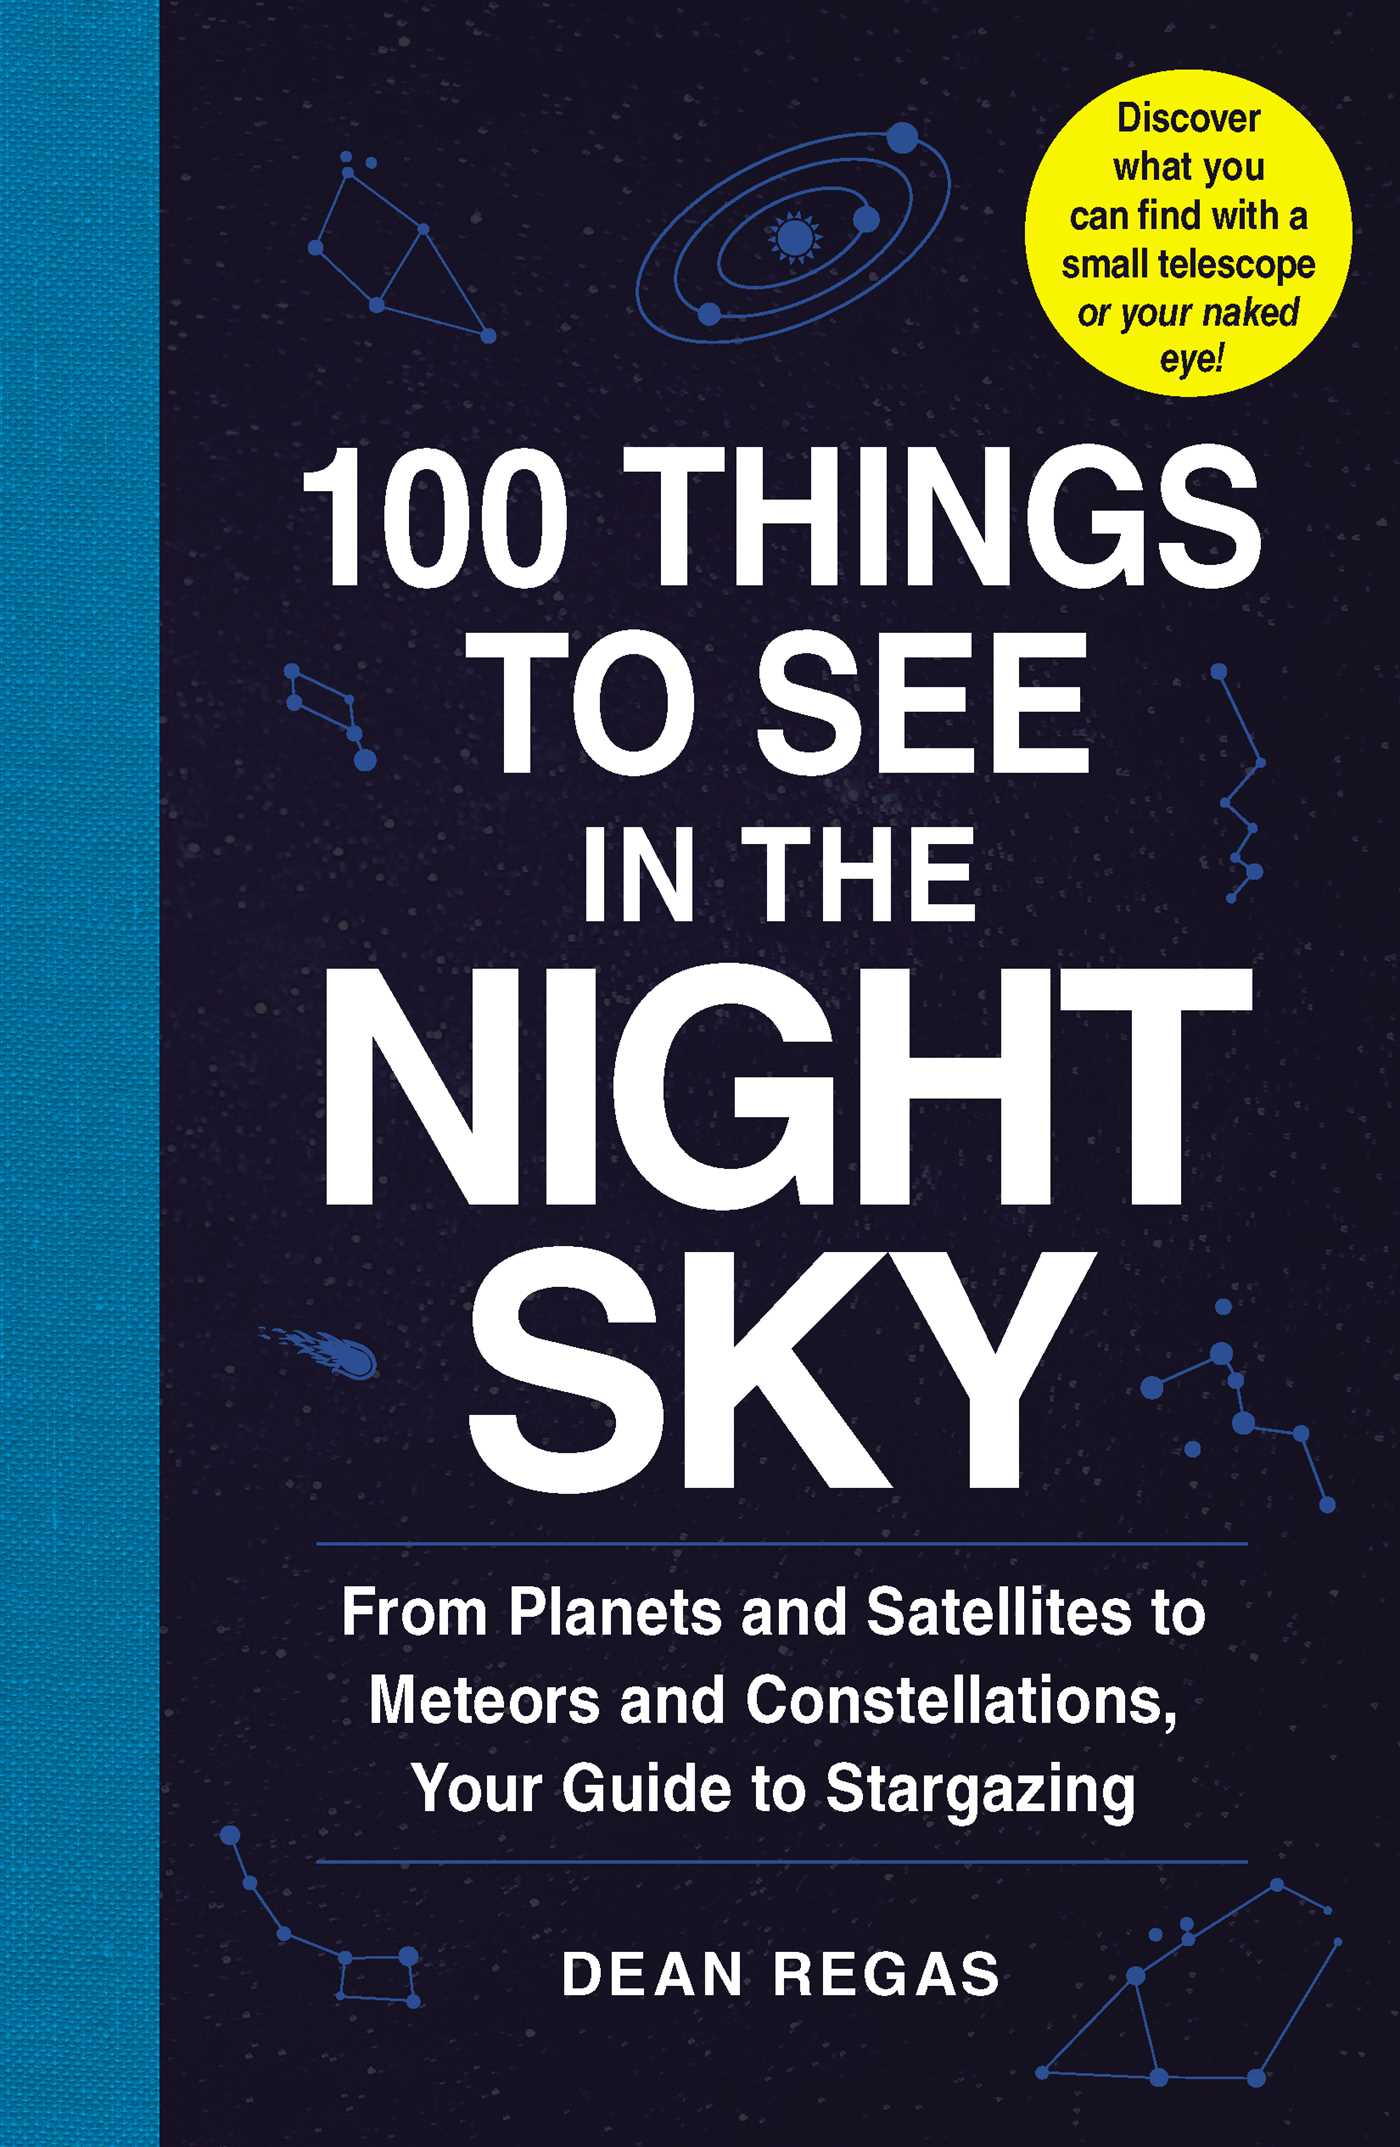 100 things to see in the night sky 9781507205051 hr